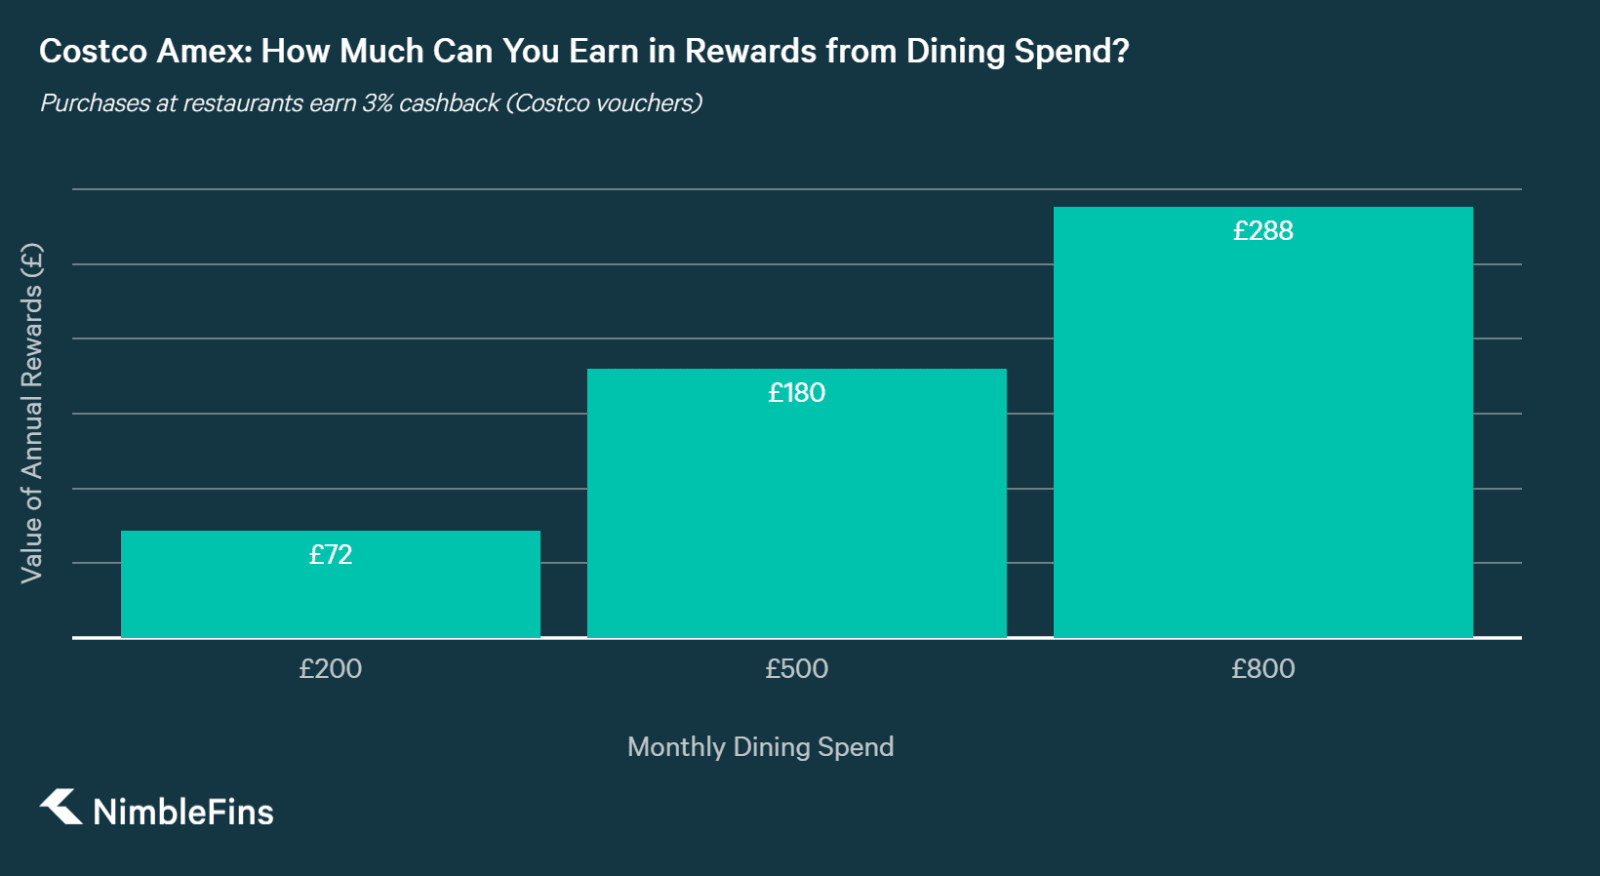 chart showing annual rewards from dining on the Costco American Express Credit Card